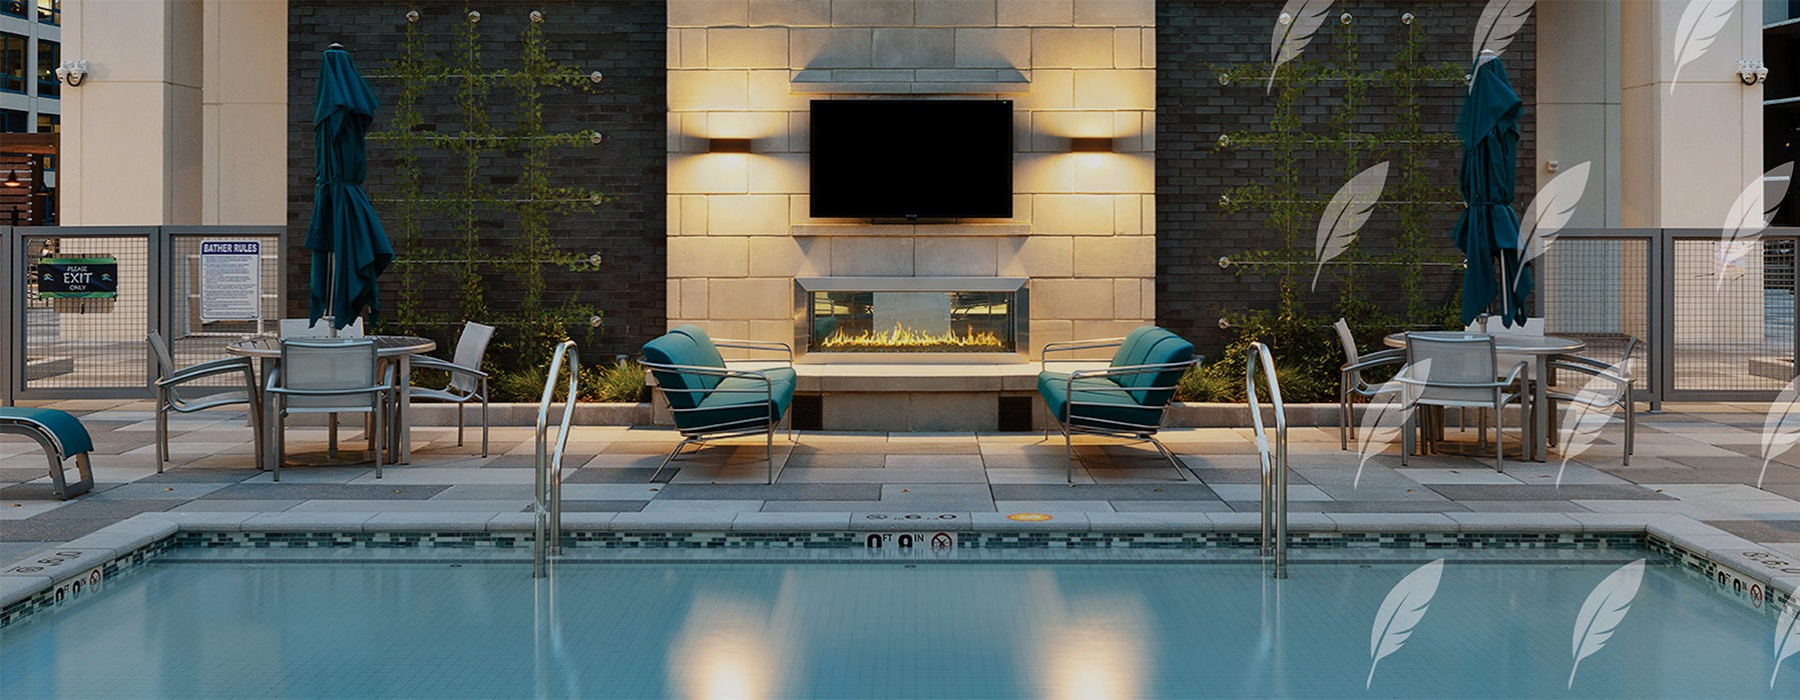 Amenities Page Banner